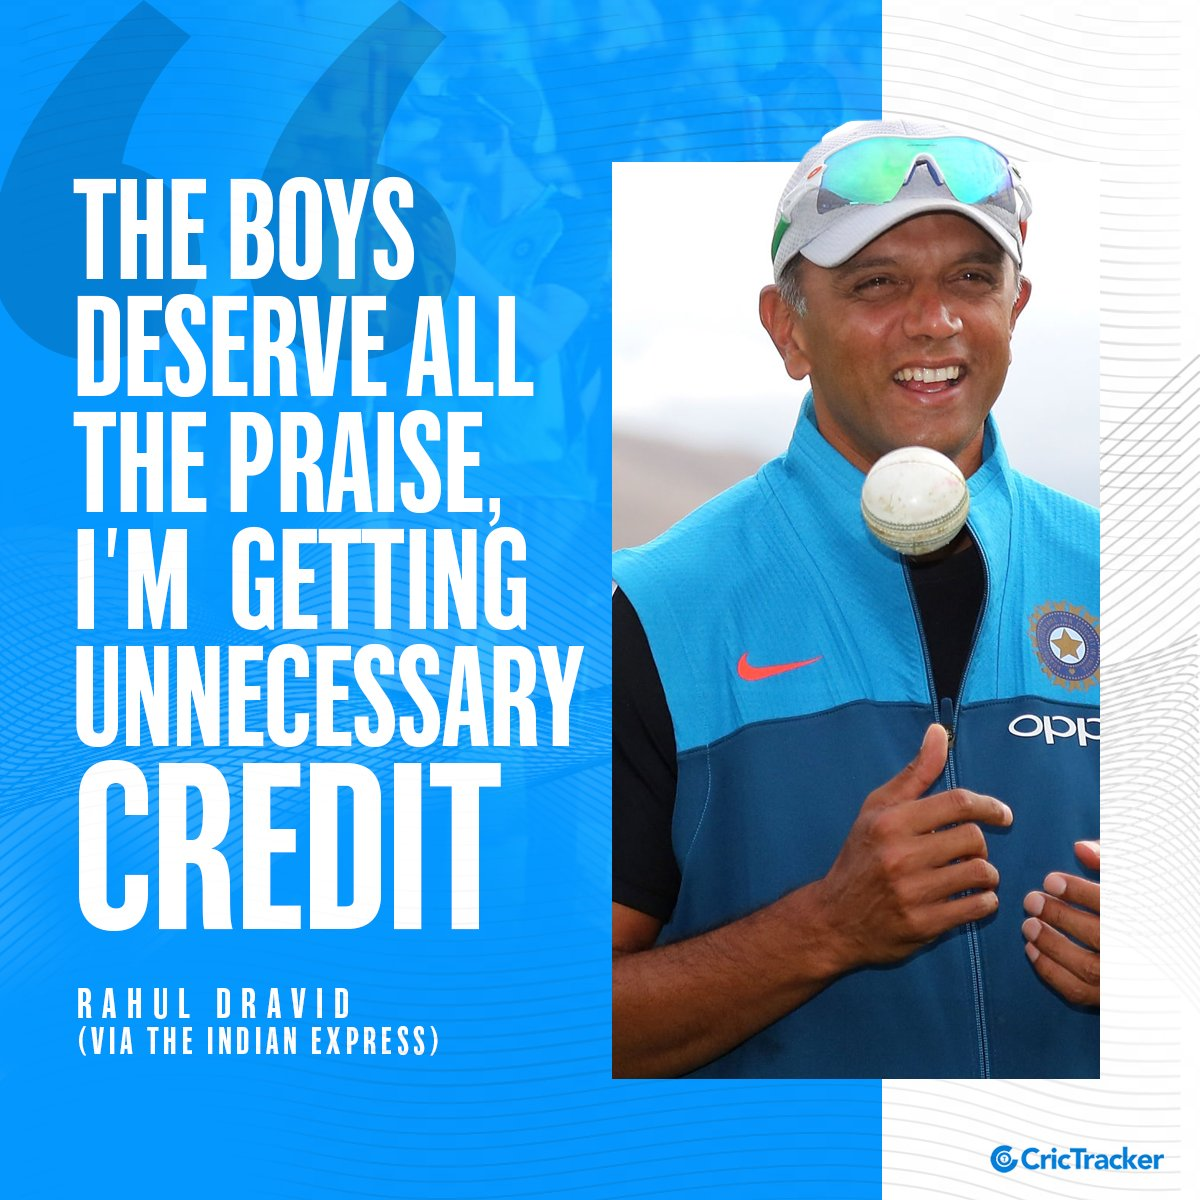 Why so selfless Rahul Dravid? ❤❤  #RahulDravid #India #AUSvsIND #Cricket #CricTracker